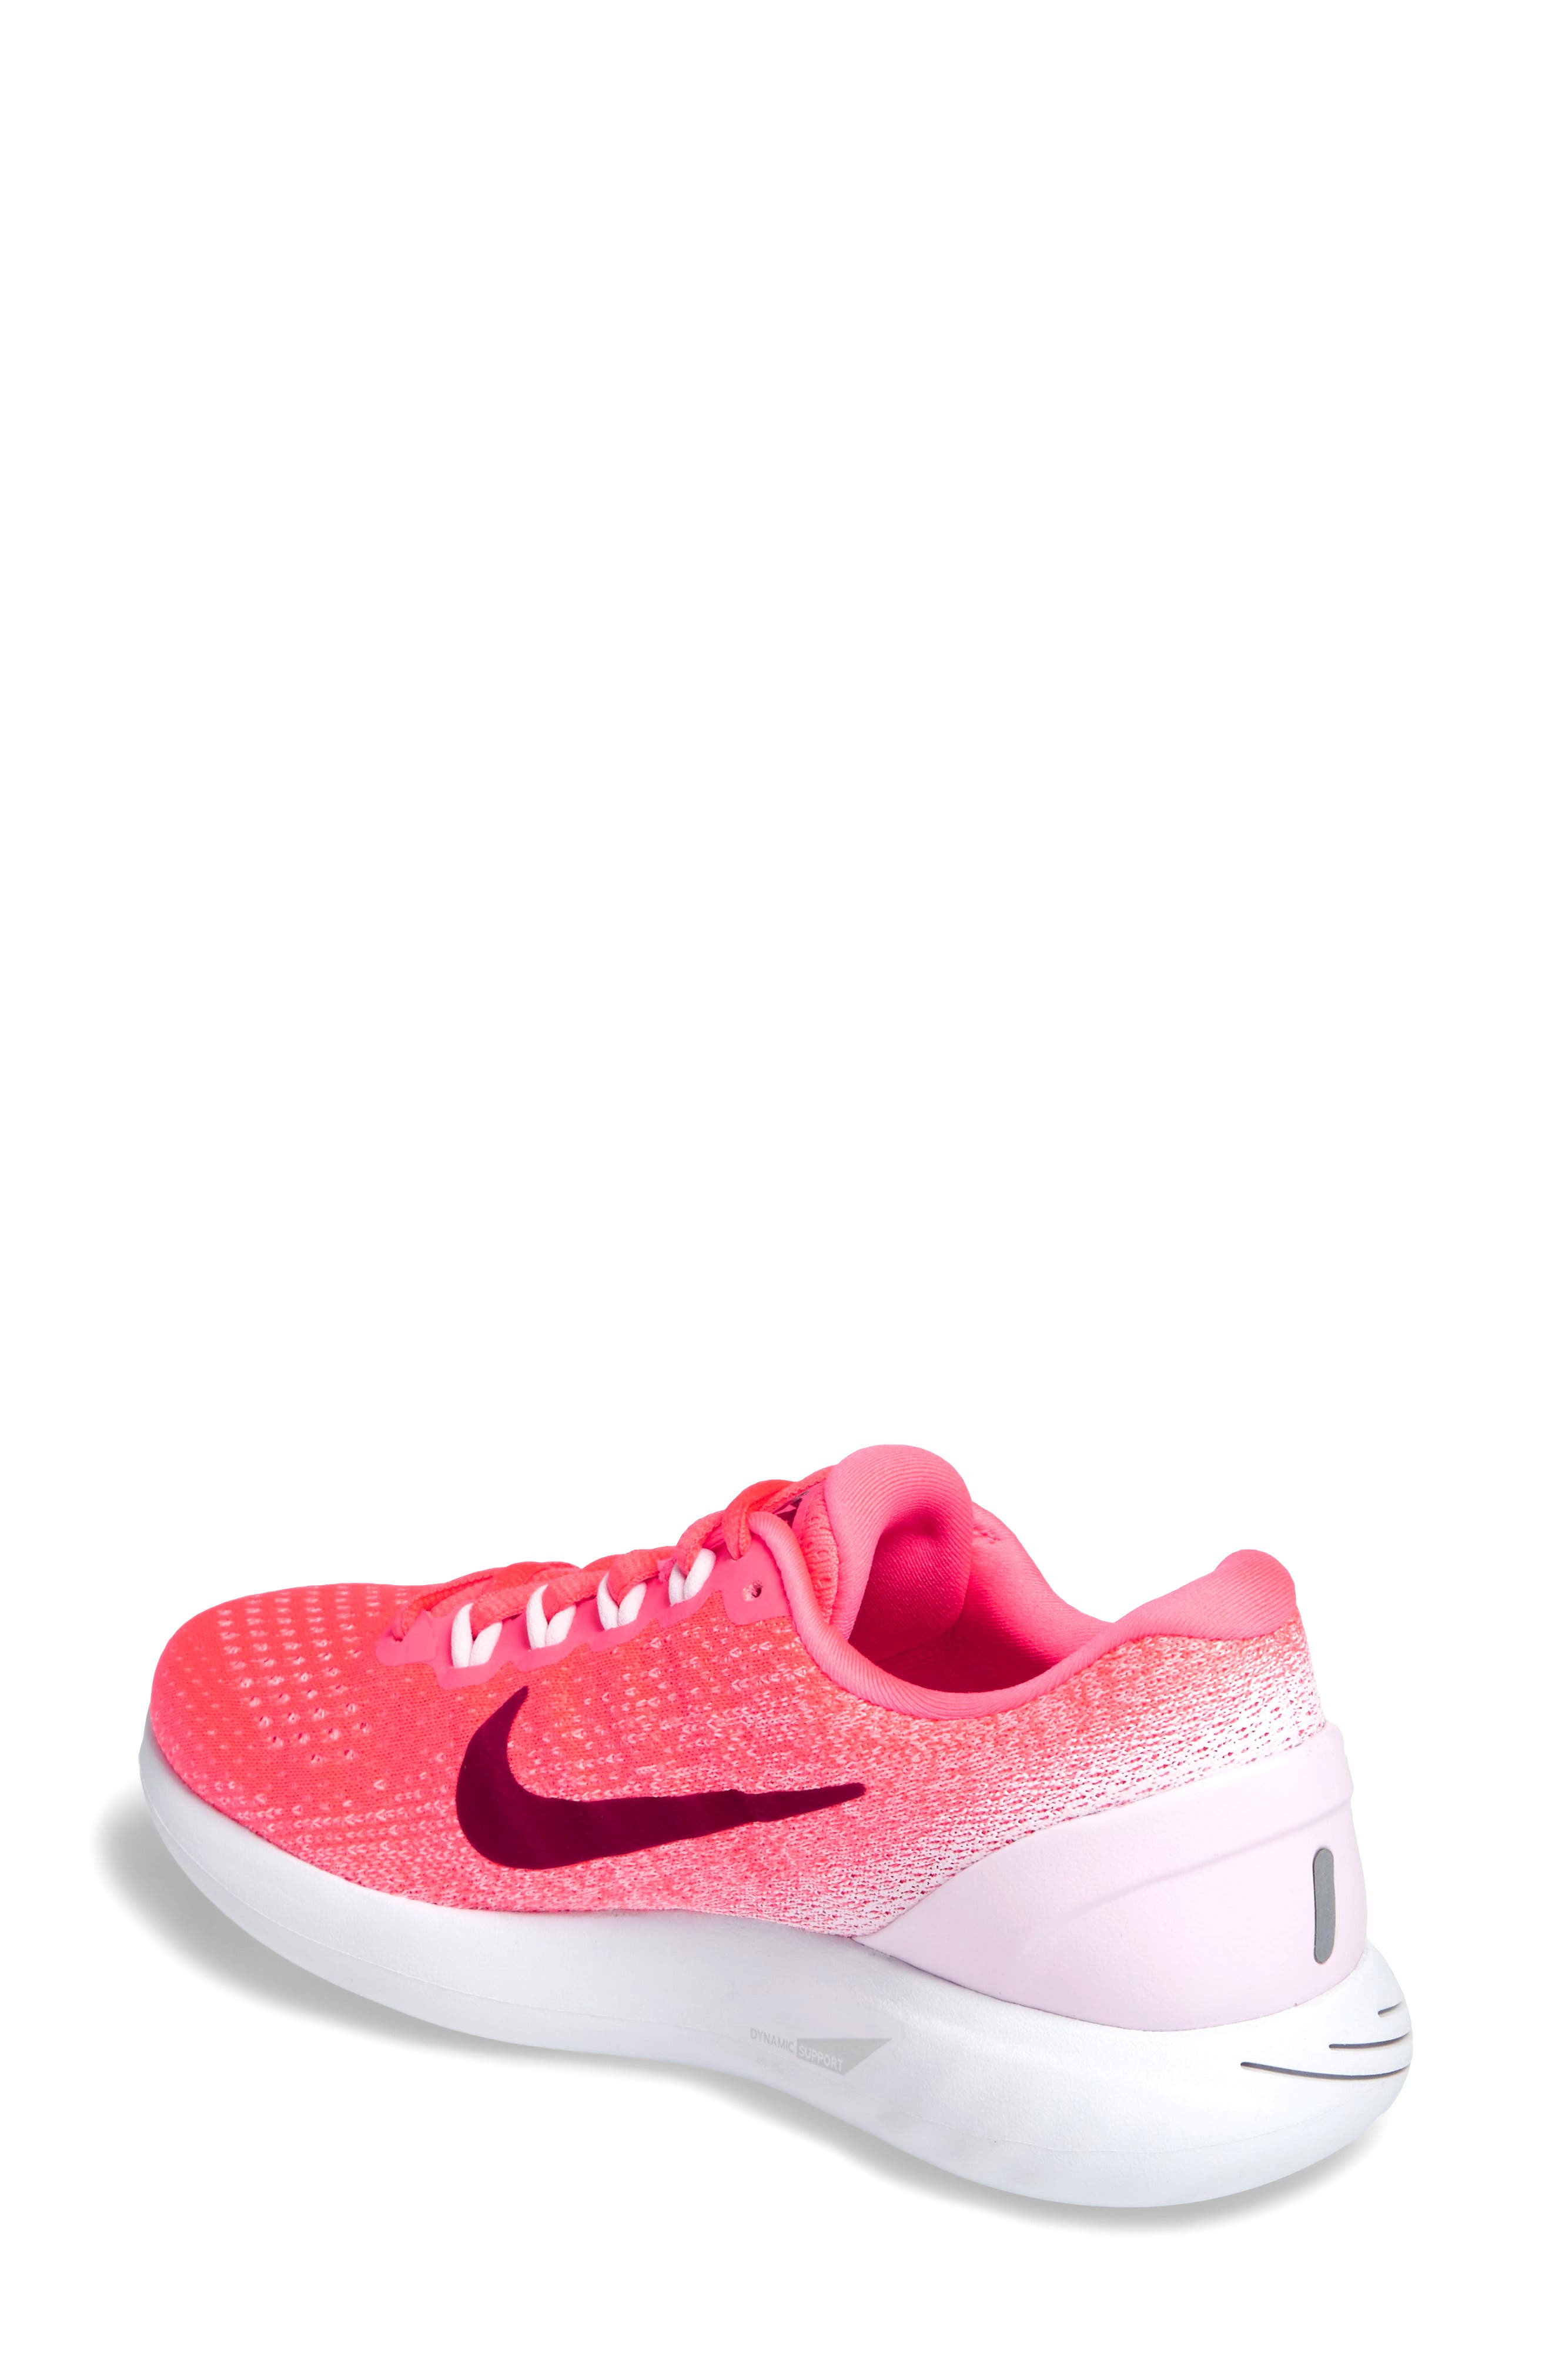 LunarGlide 9 Running Shoe,                             Alternate thumbnail 2, color,                             Hot Punch/ Noble Red/ Arctic